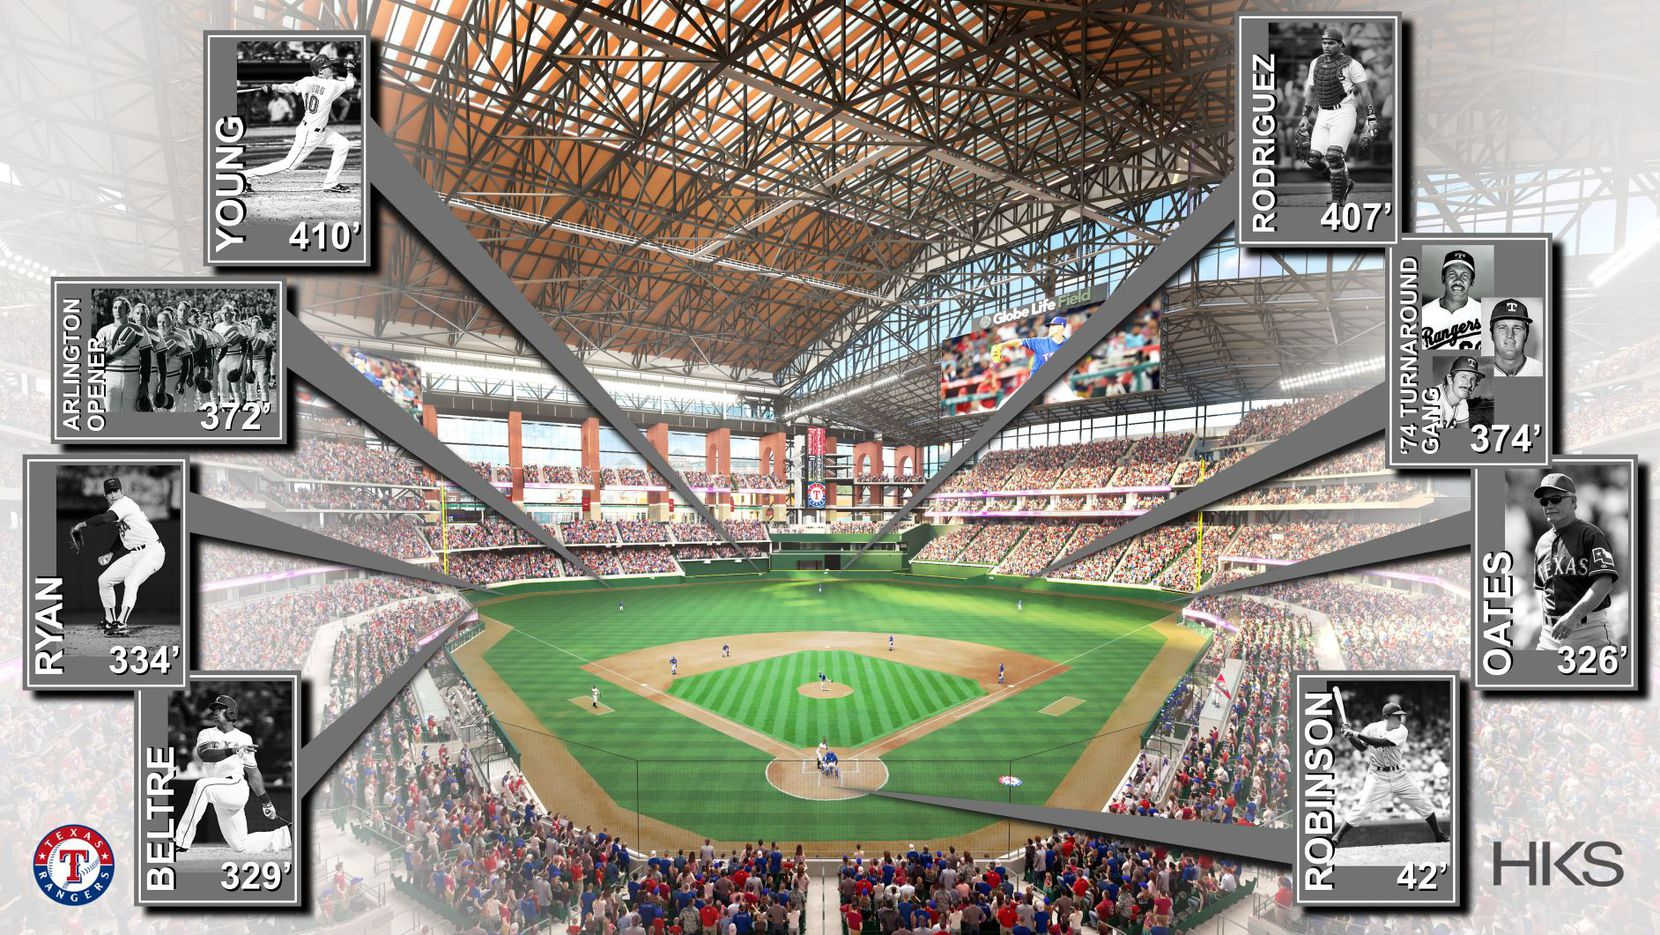 Renderings from the Texas Rangers of the field dimensions for Globe Life Field.